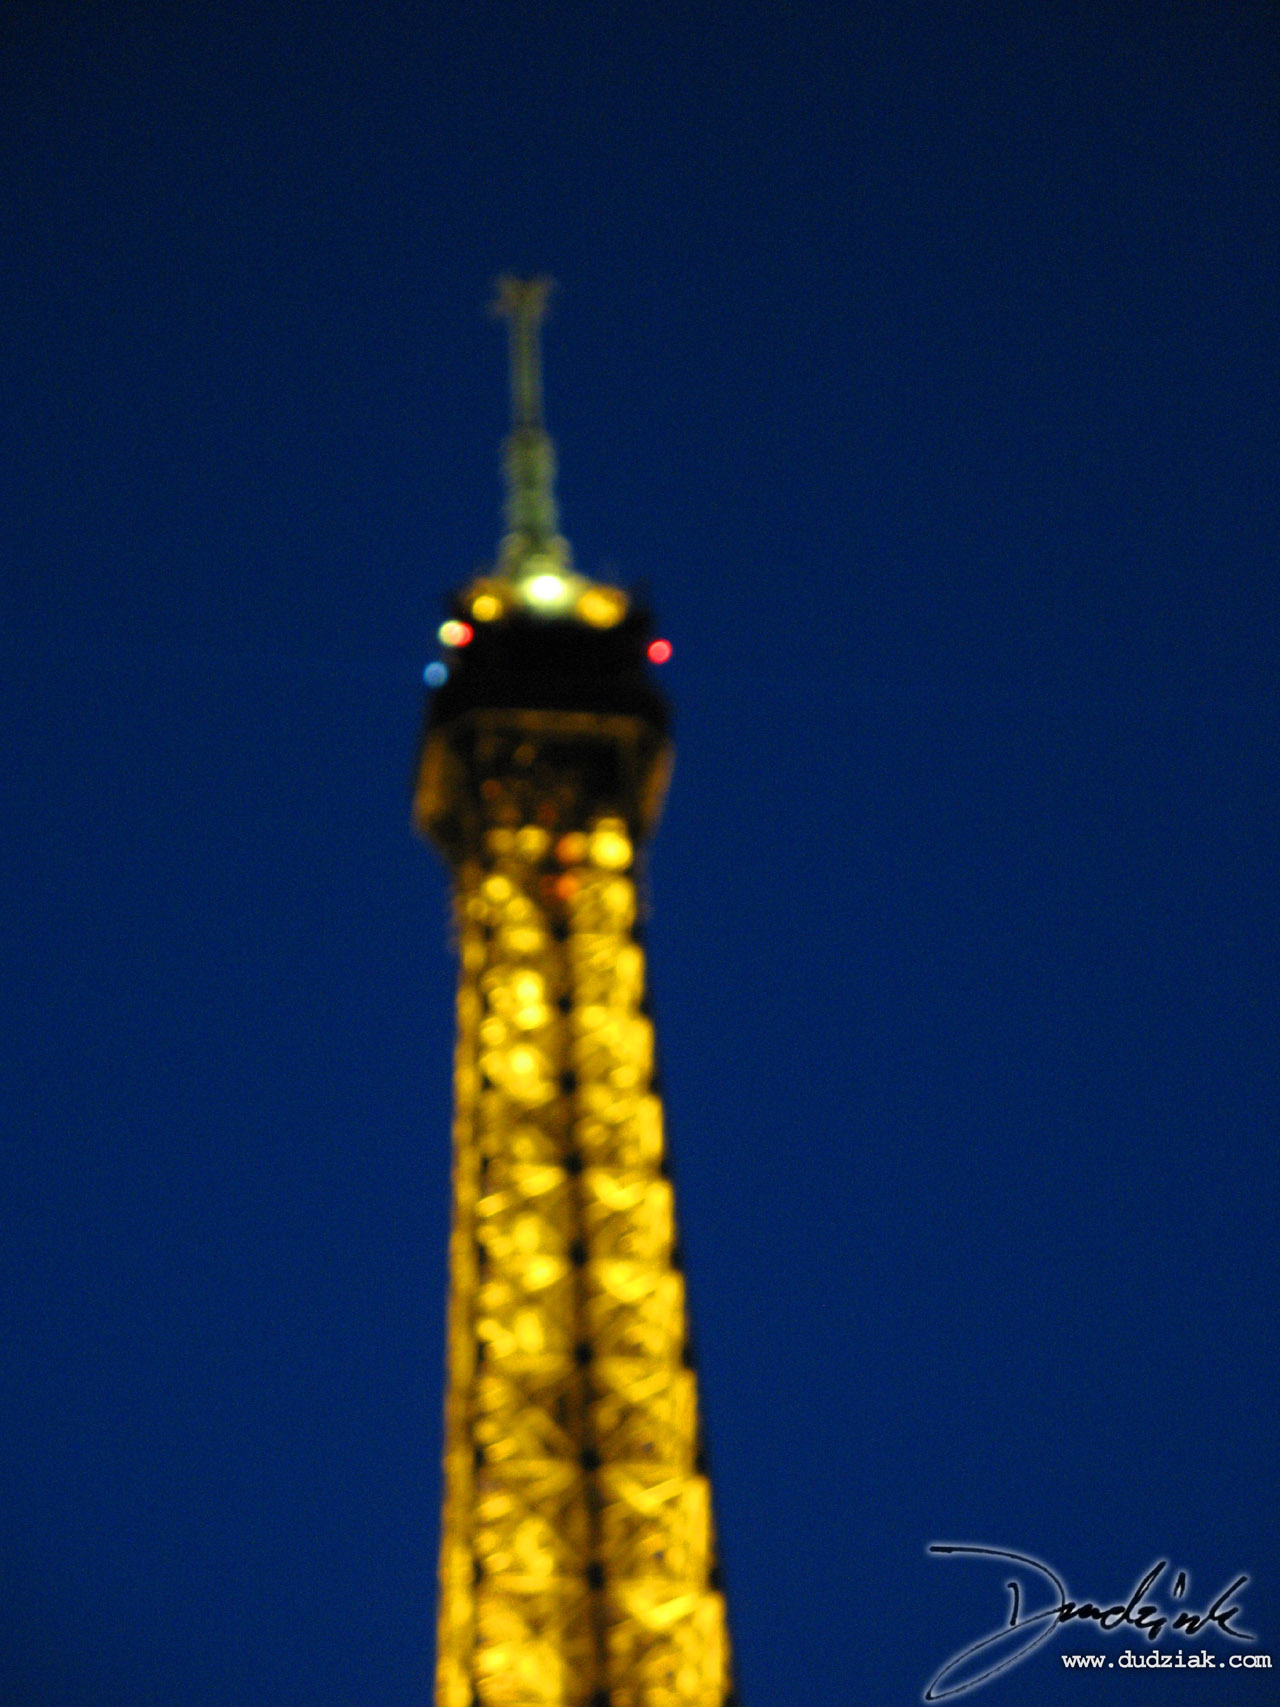 Night,  Eiffel Tower,  Paris France,  tour eiffel,  Lighted